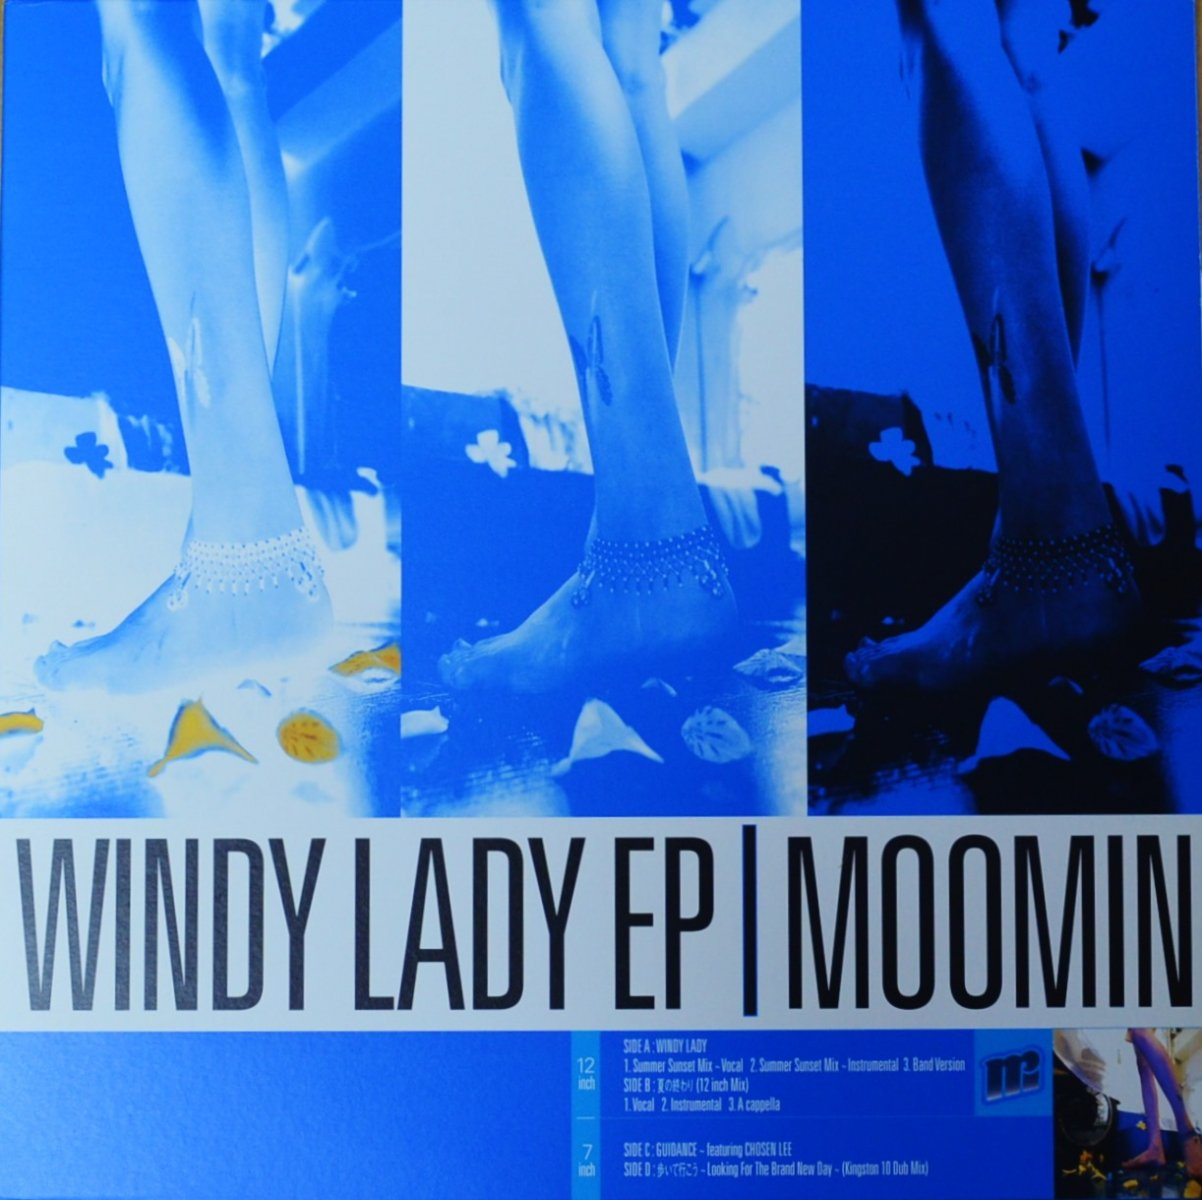 MOOMIN ‎/ WINDY LADY EP / 夏の終わり (PROD BY DEV LARGE) / GUIDANCE / 歩いて行こう (12